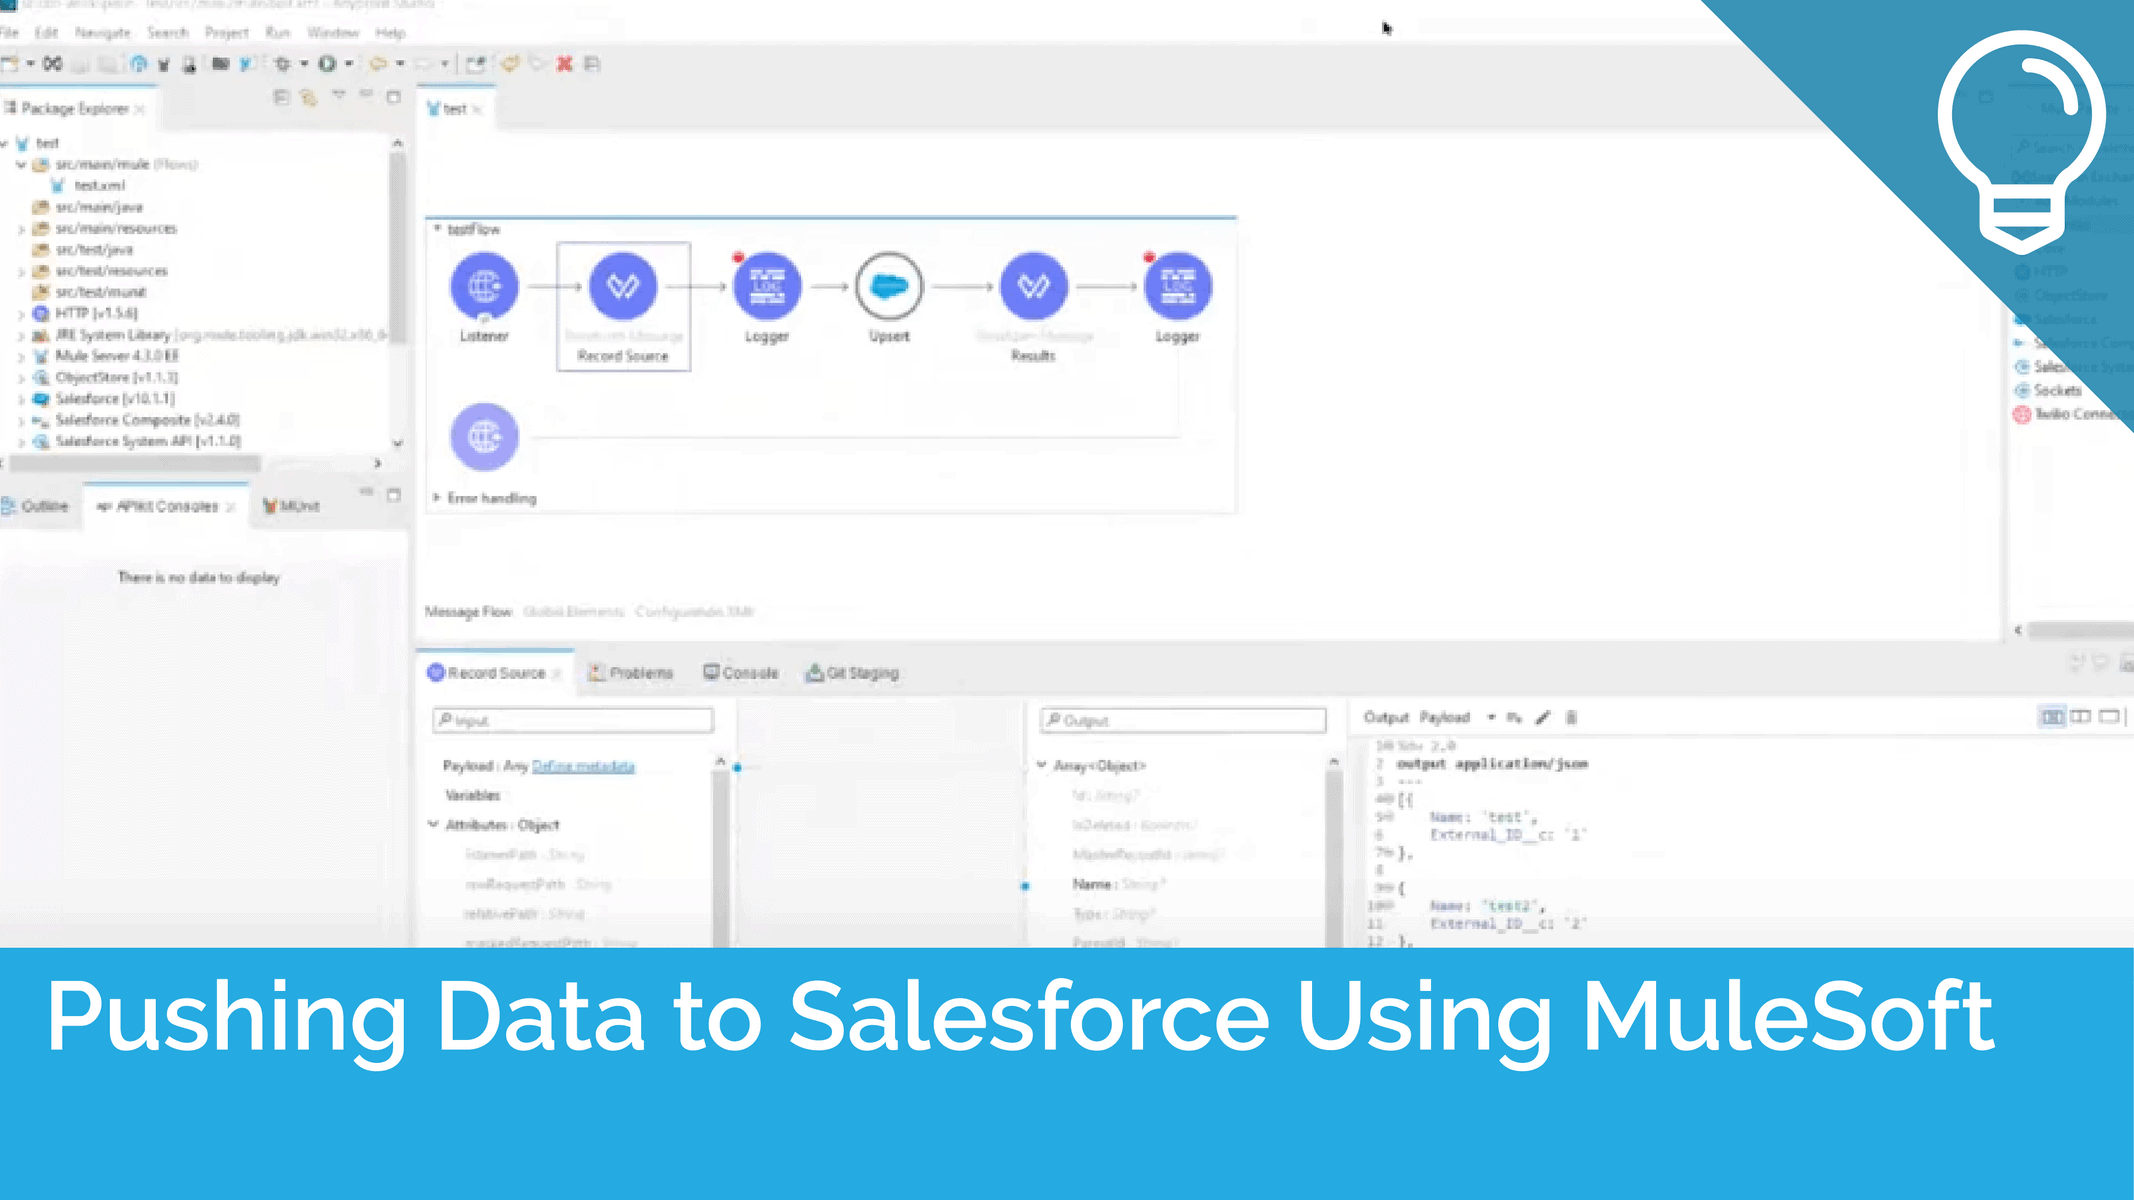 Pushing Data to Salesforce Using MuleSoft Connector